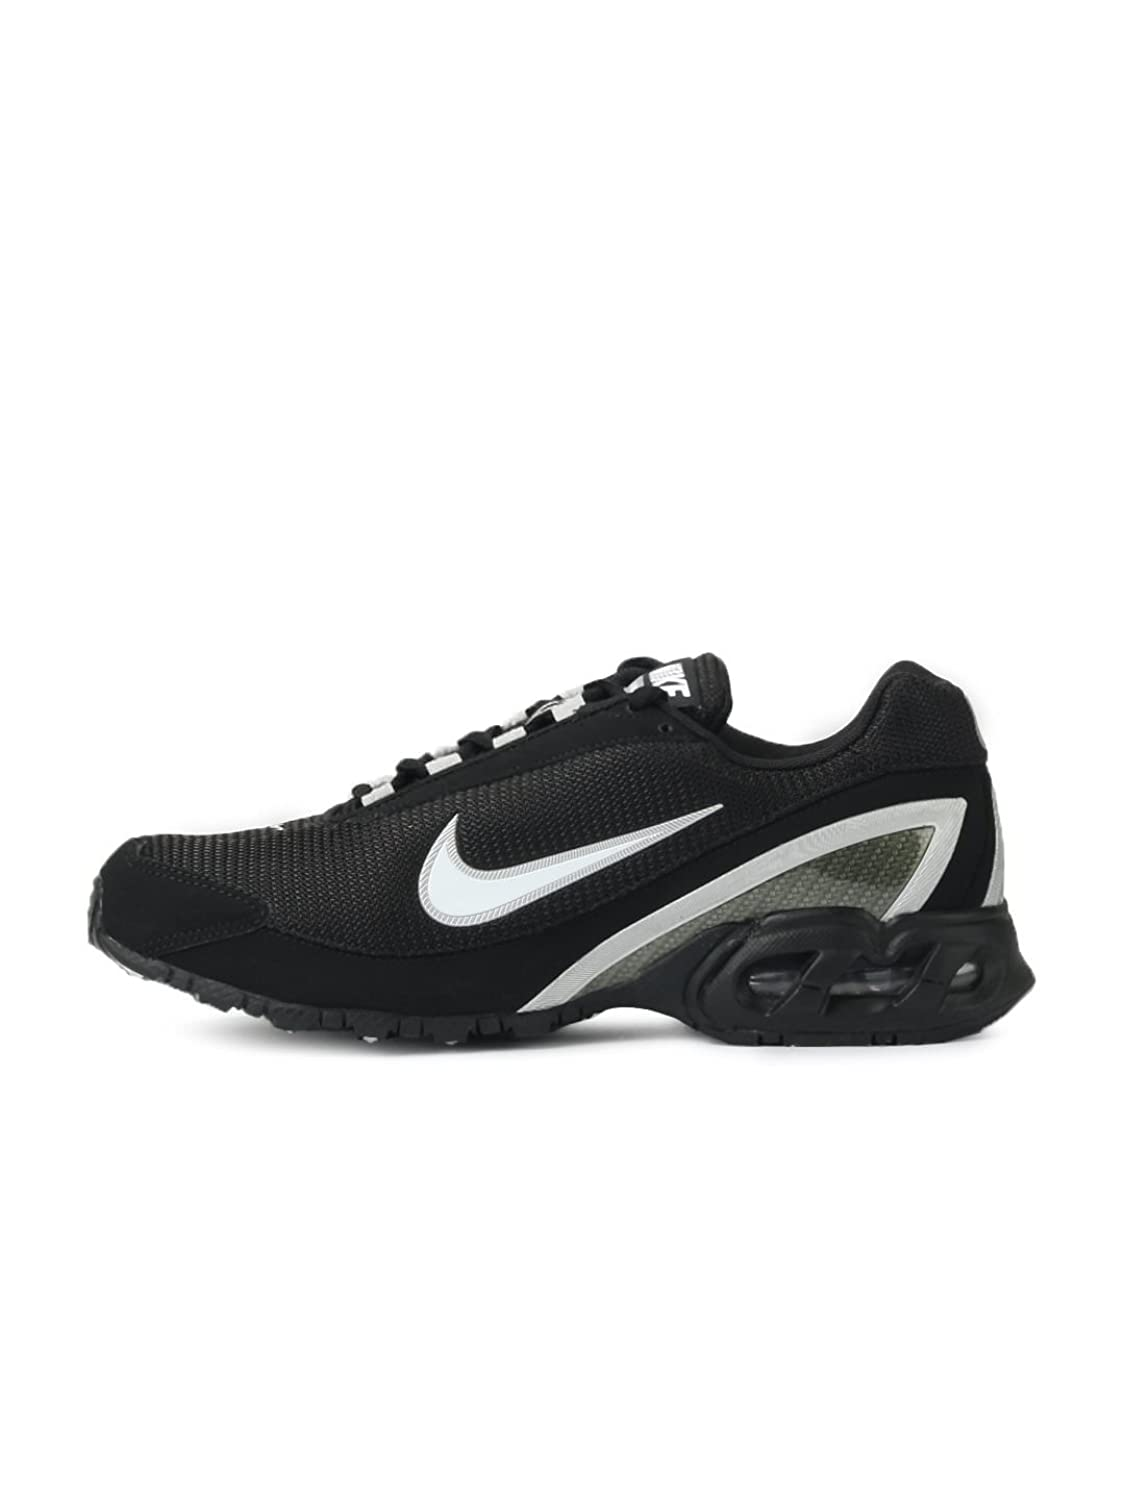 Nike air max torch 4 running shoe - Amazon Com Nike Air Max Torch 3 Men S Running Shoes Track Field Cross Country